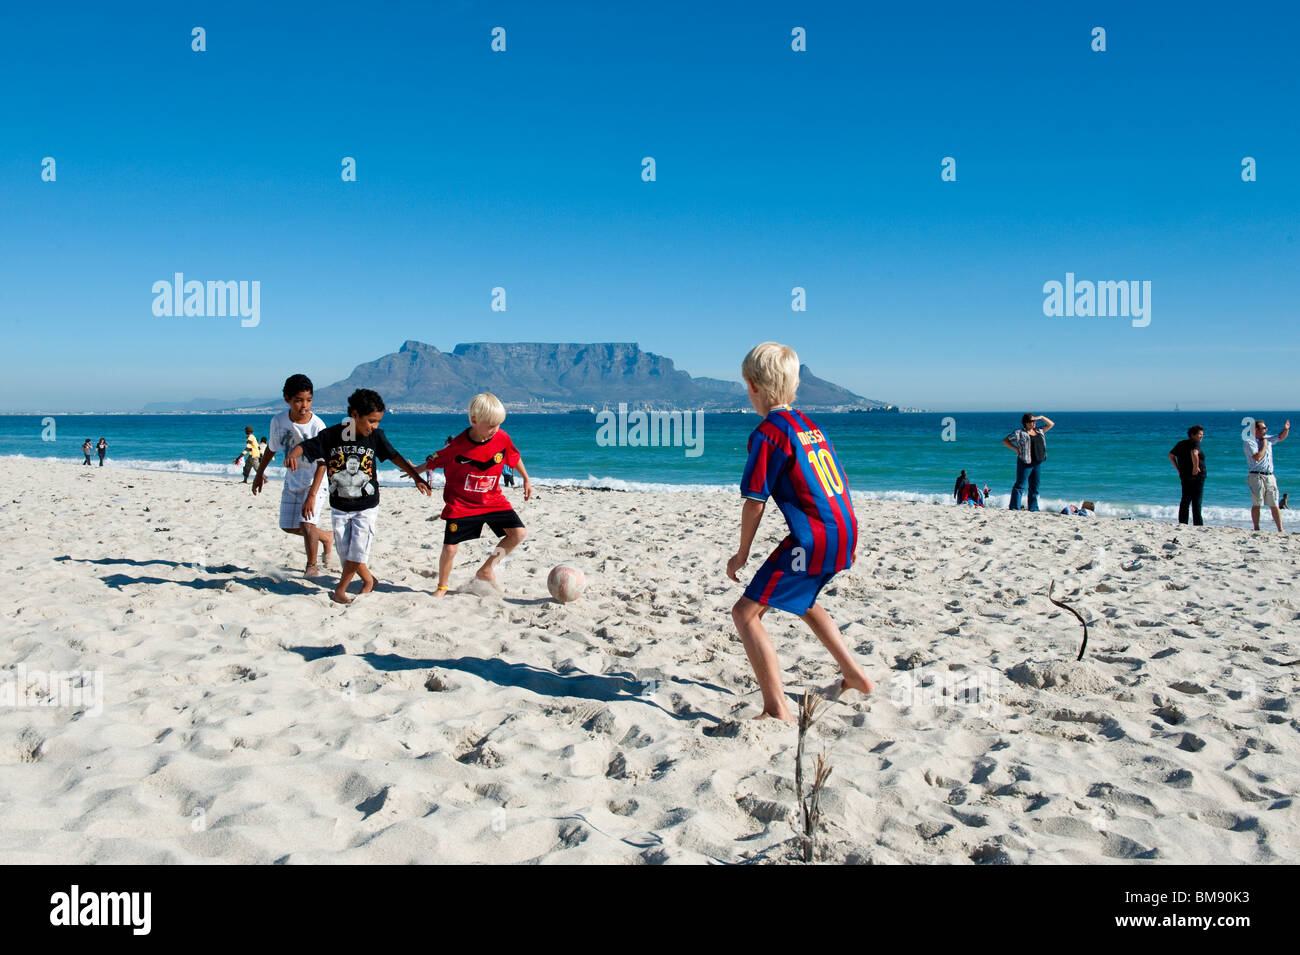 Children playing football on the beach in Bloubergstrand Cape Town South Africa - Stock Image